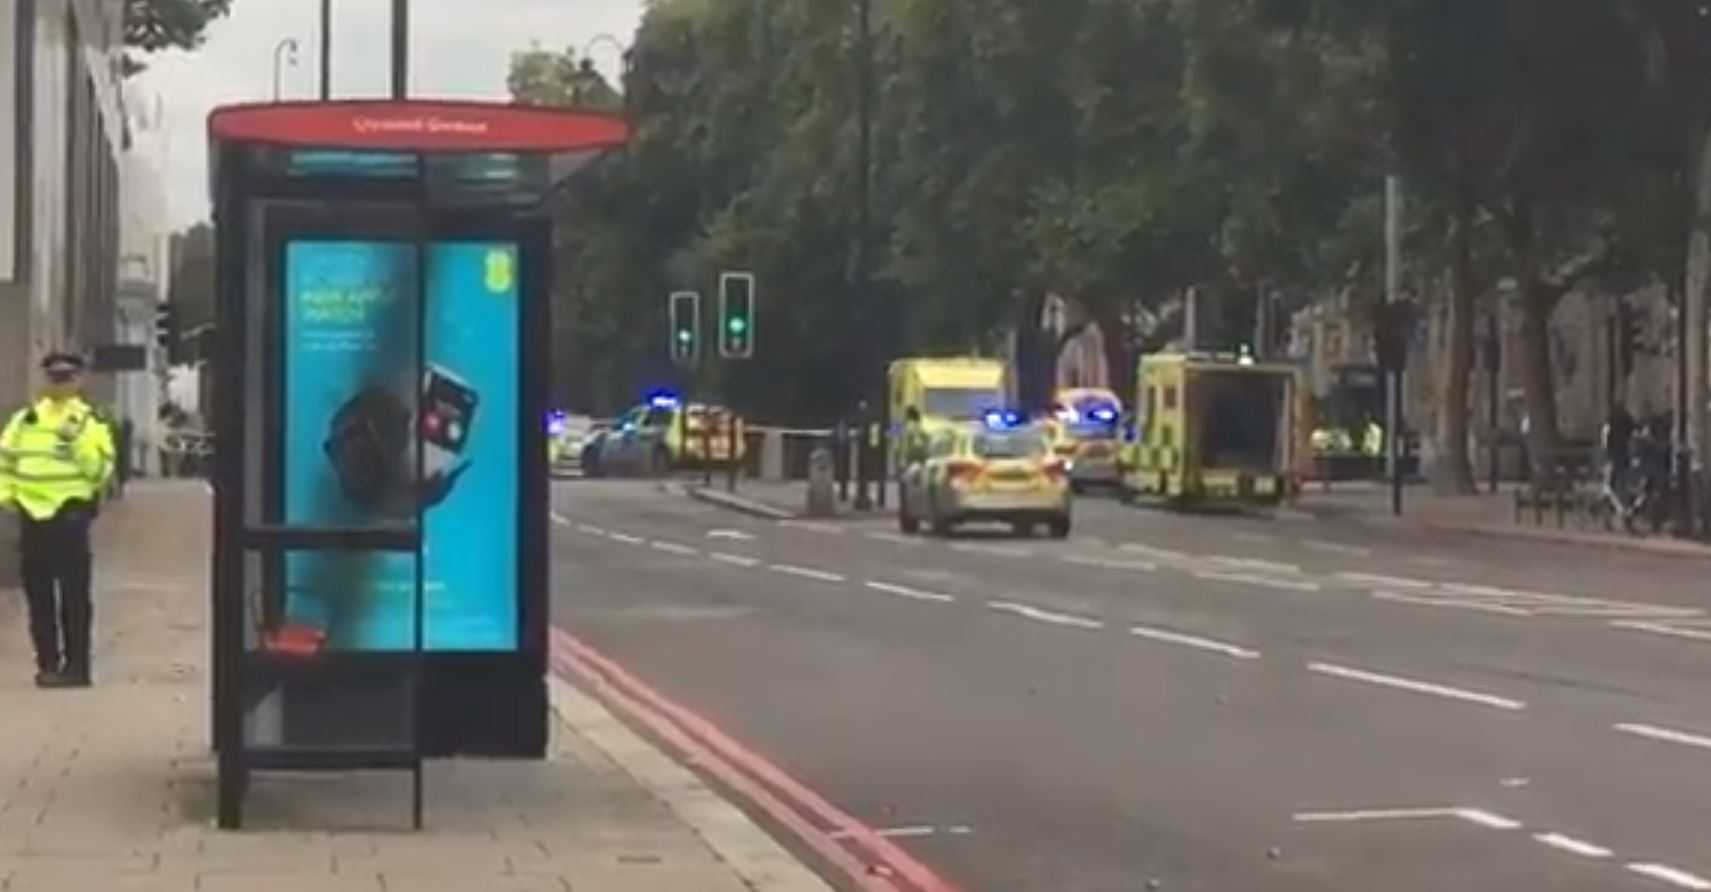 Several injured after vehicle ploughs into pedestrians in London